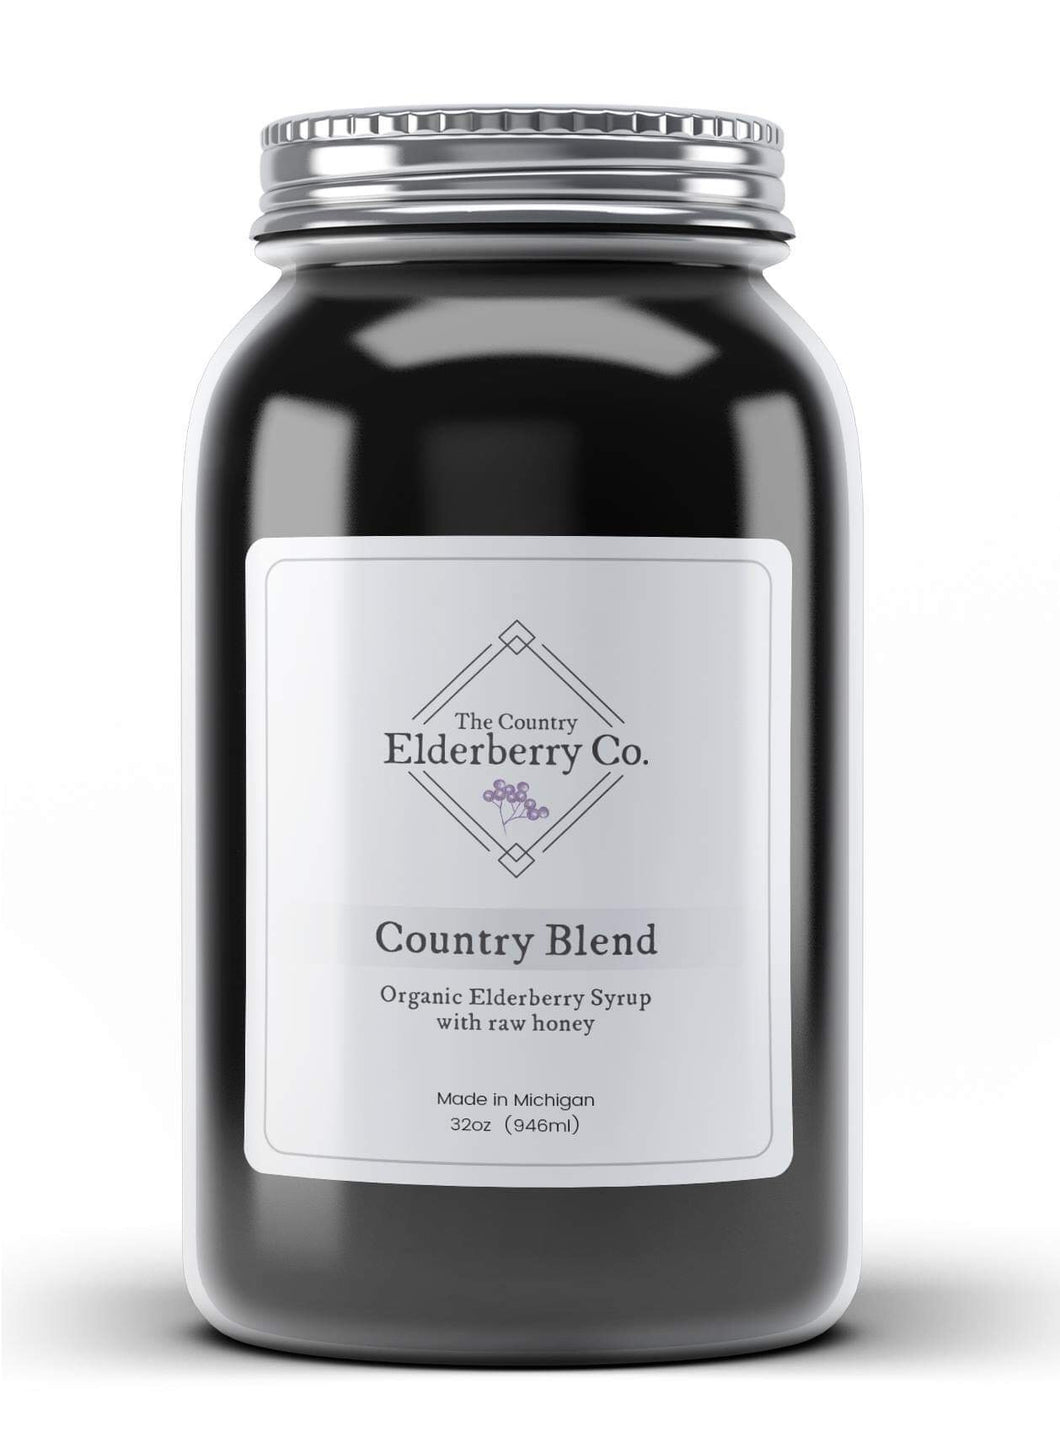 Elderberry syrup made with organic ingredients. Preservative and filler free. Used to treat cold, flu and seasonal allergies. Made in Michigan